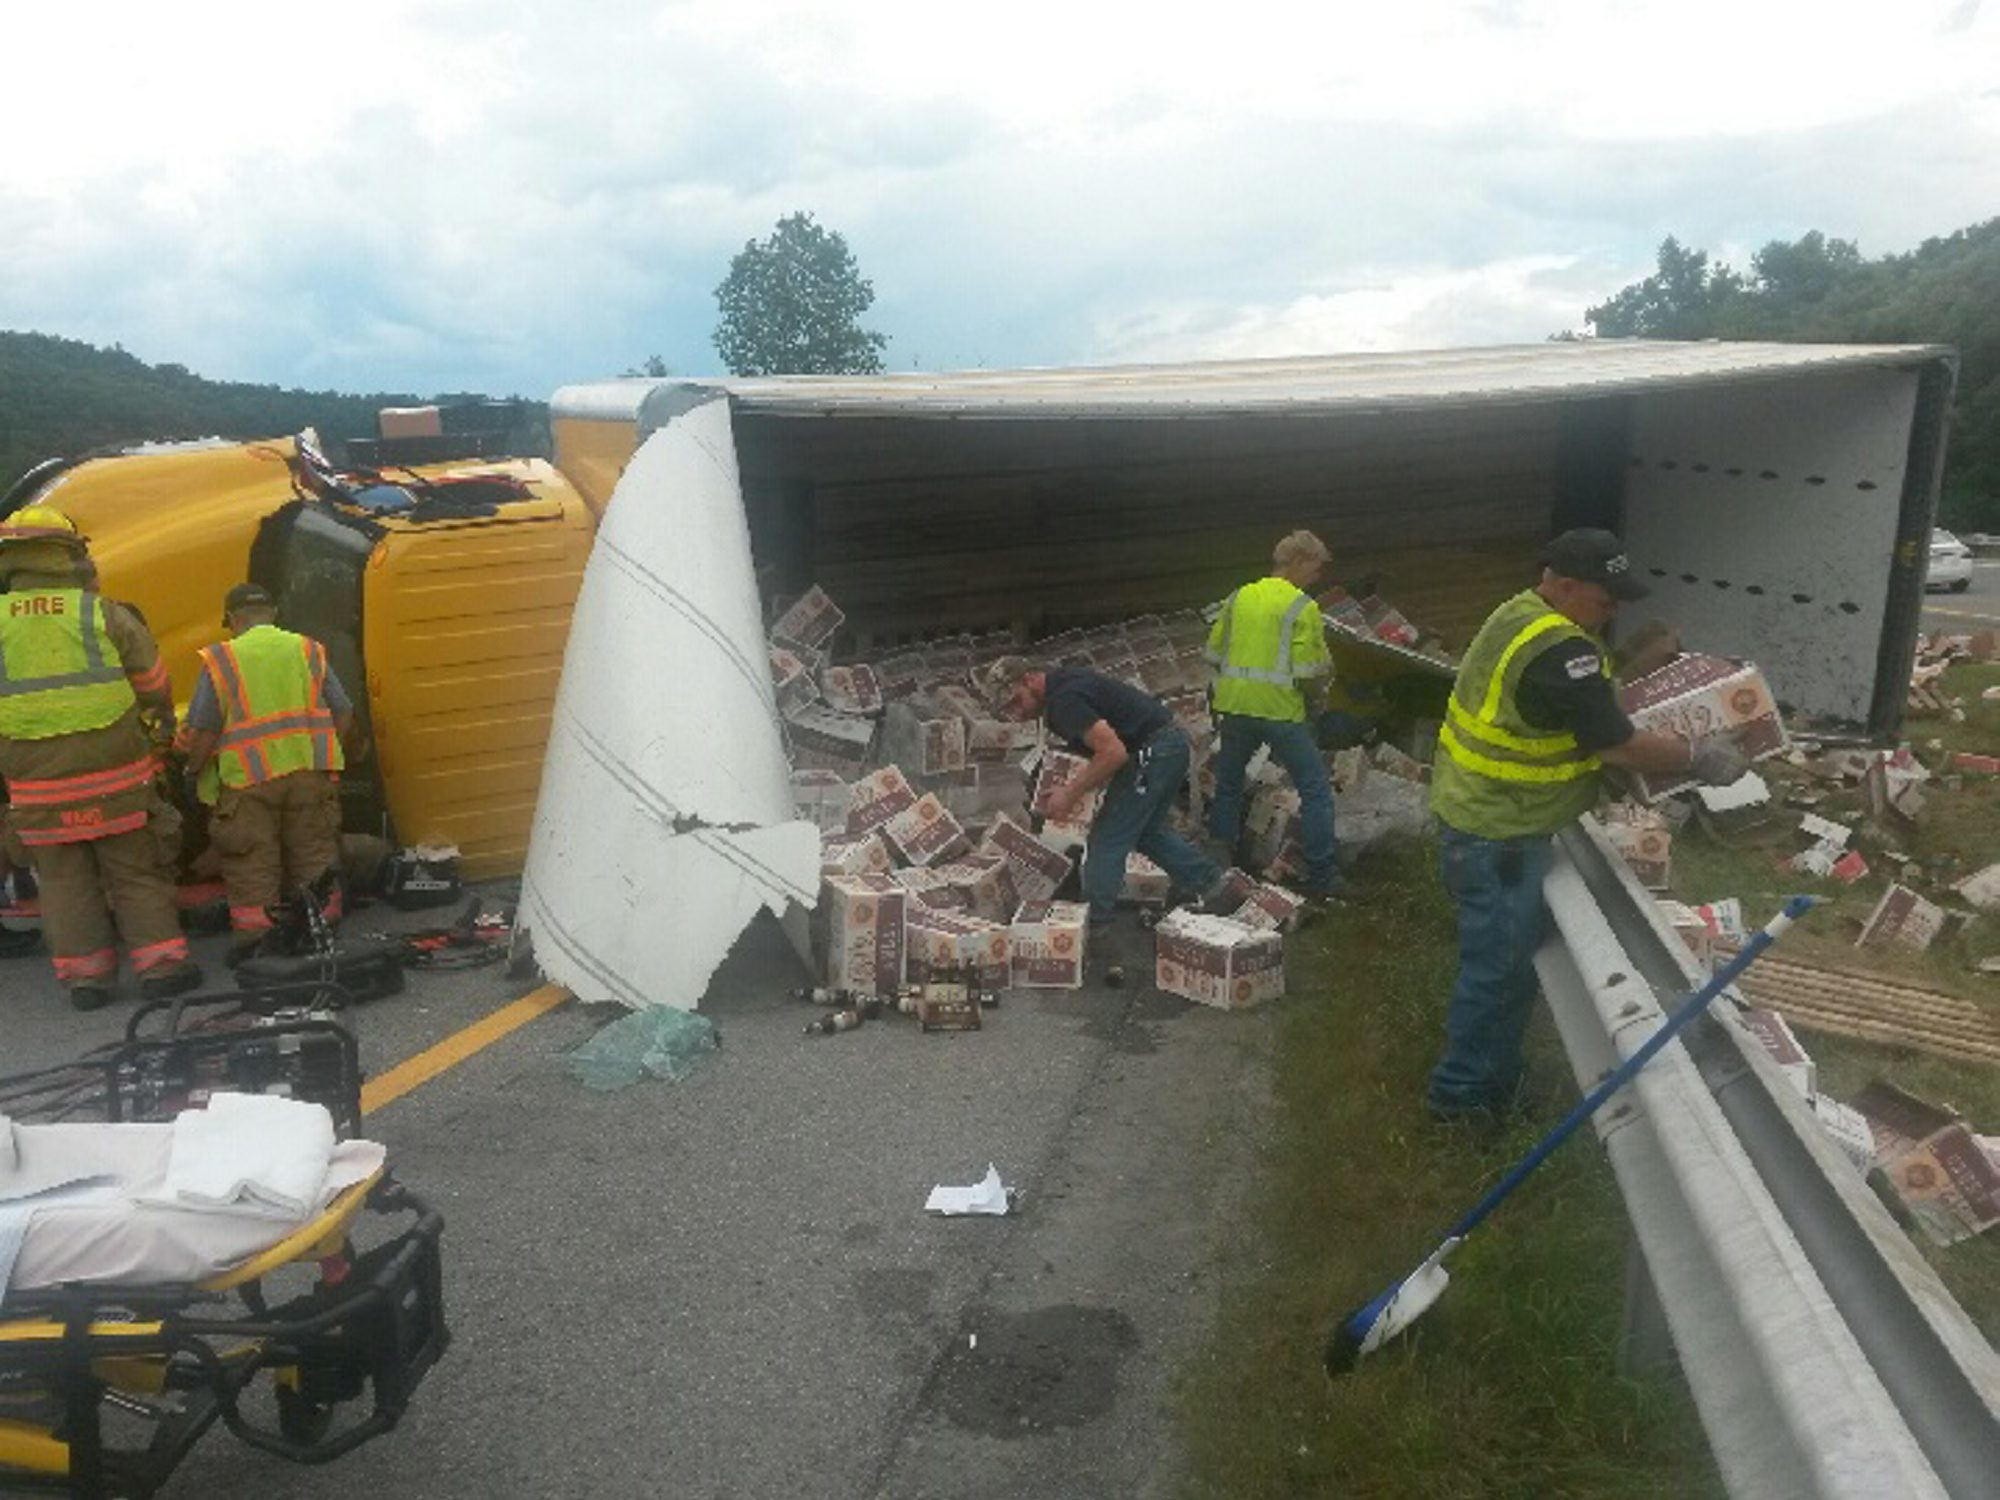 Emergency responders clean up the scene of a tractor-trailer rollover on the Thruway past Utica on Friday afternoon.